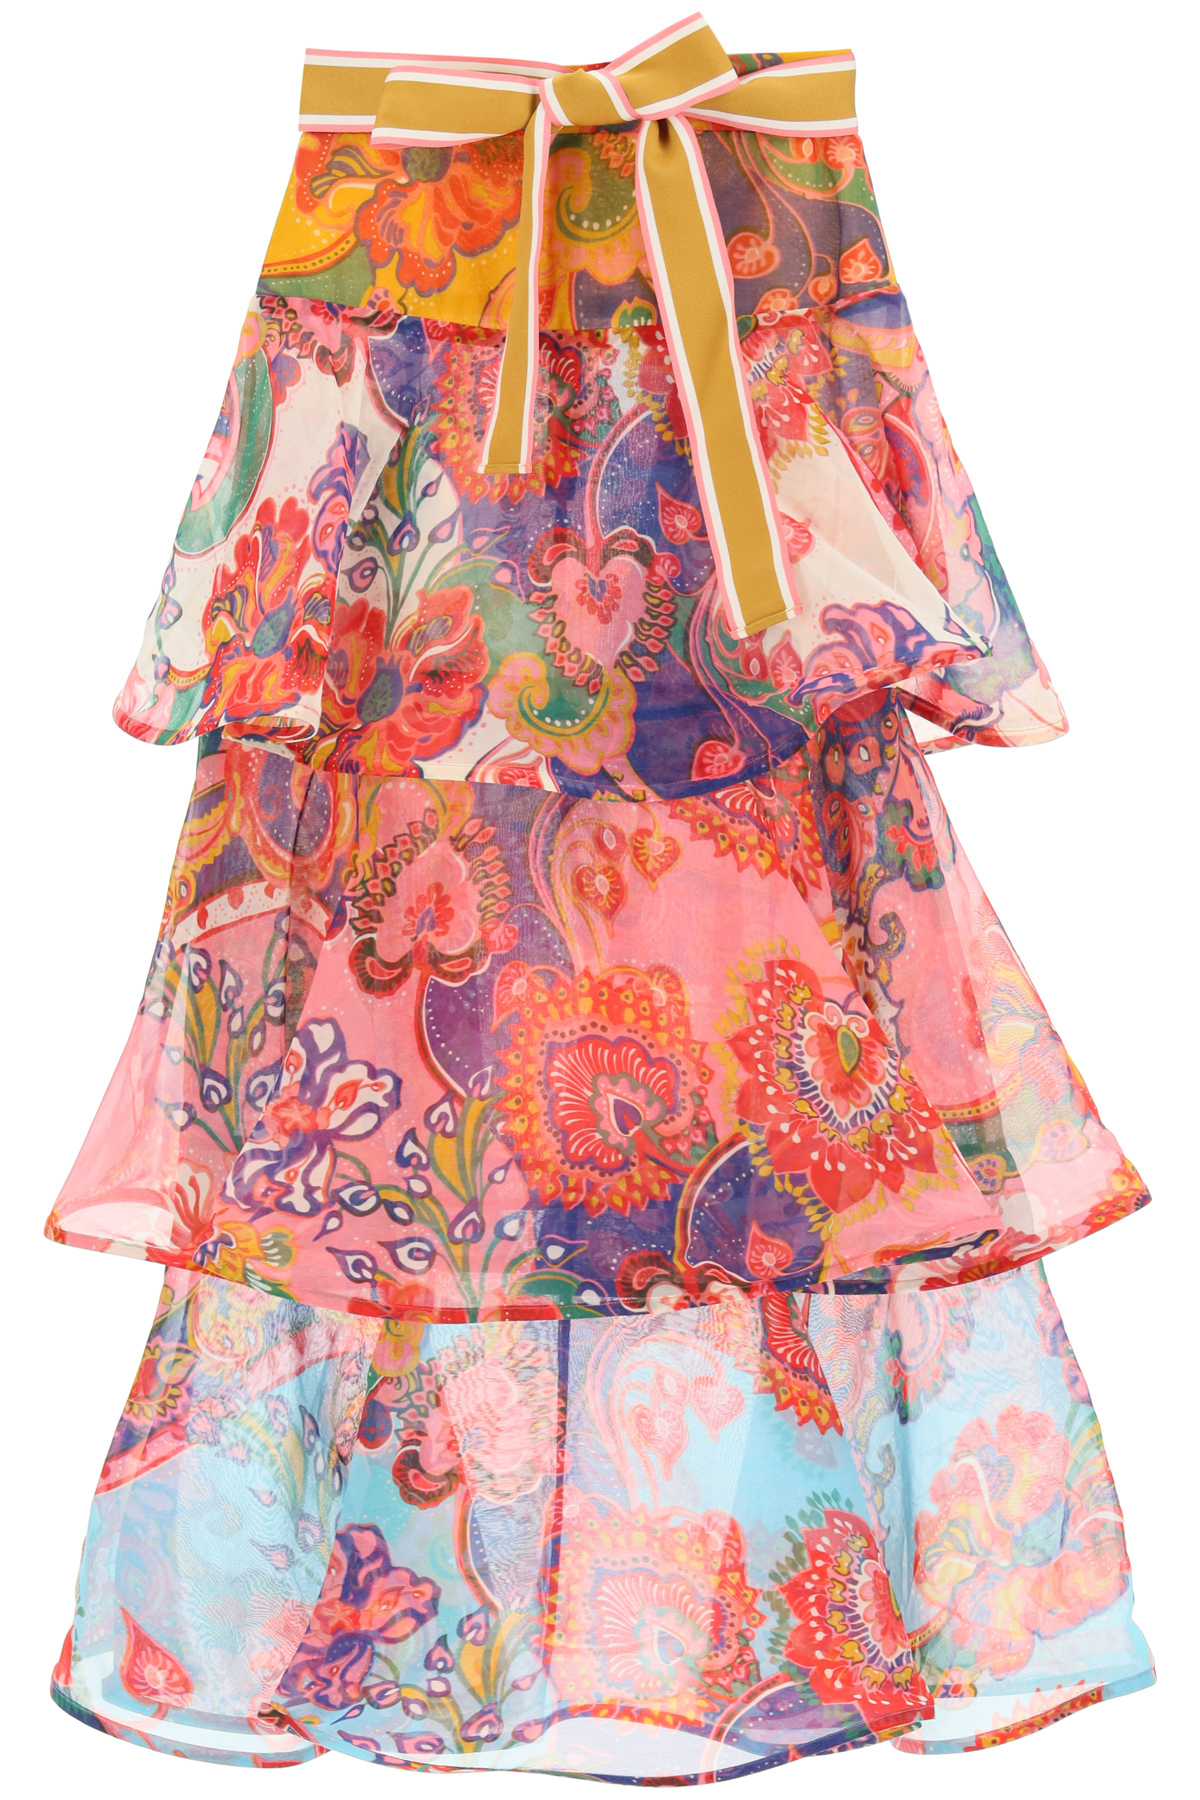 ZIMMERMANN LOVESTRUCK FLOUNCED SKIRT 0 Fuchsia, Light blue, Yellow Cotton